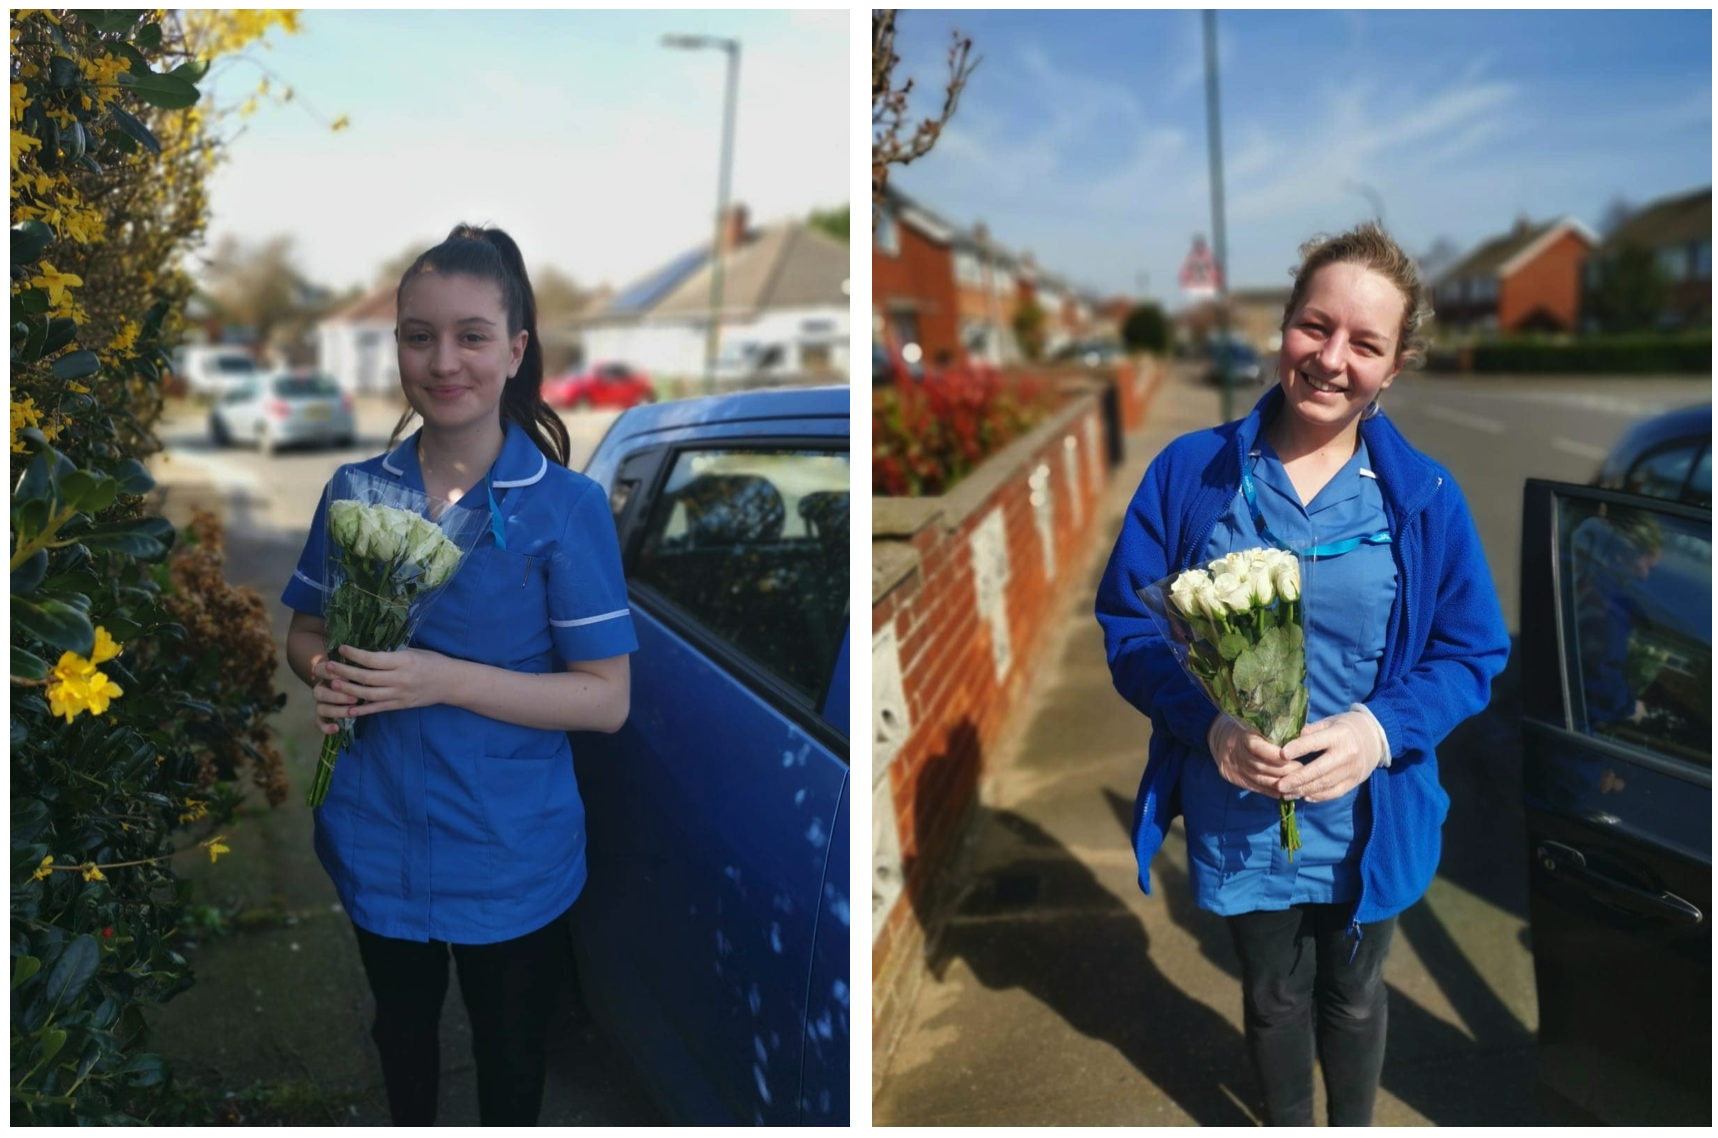 Tesco in Cleethorpes donates flowers to care assistants